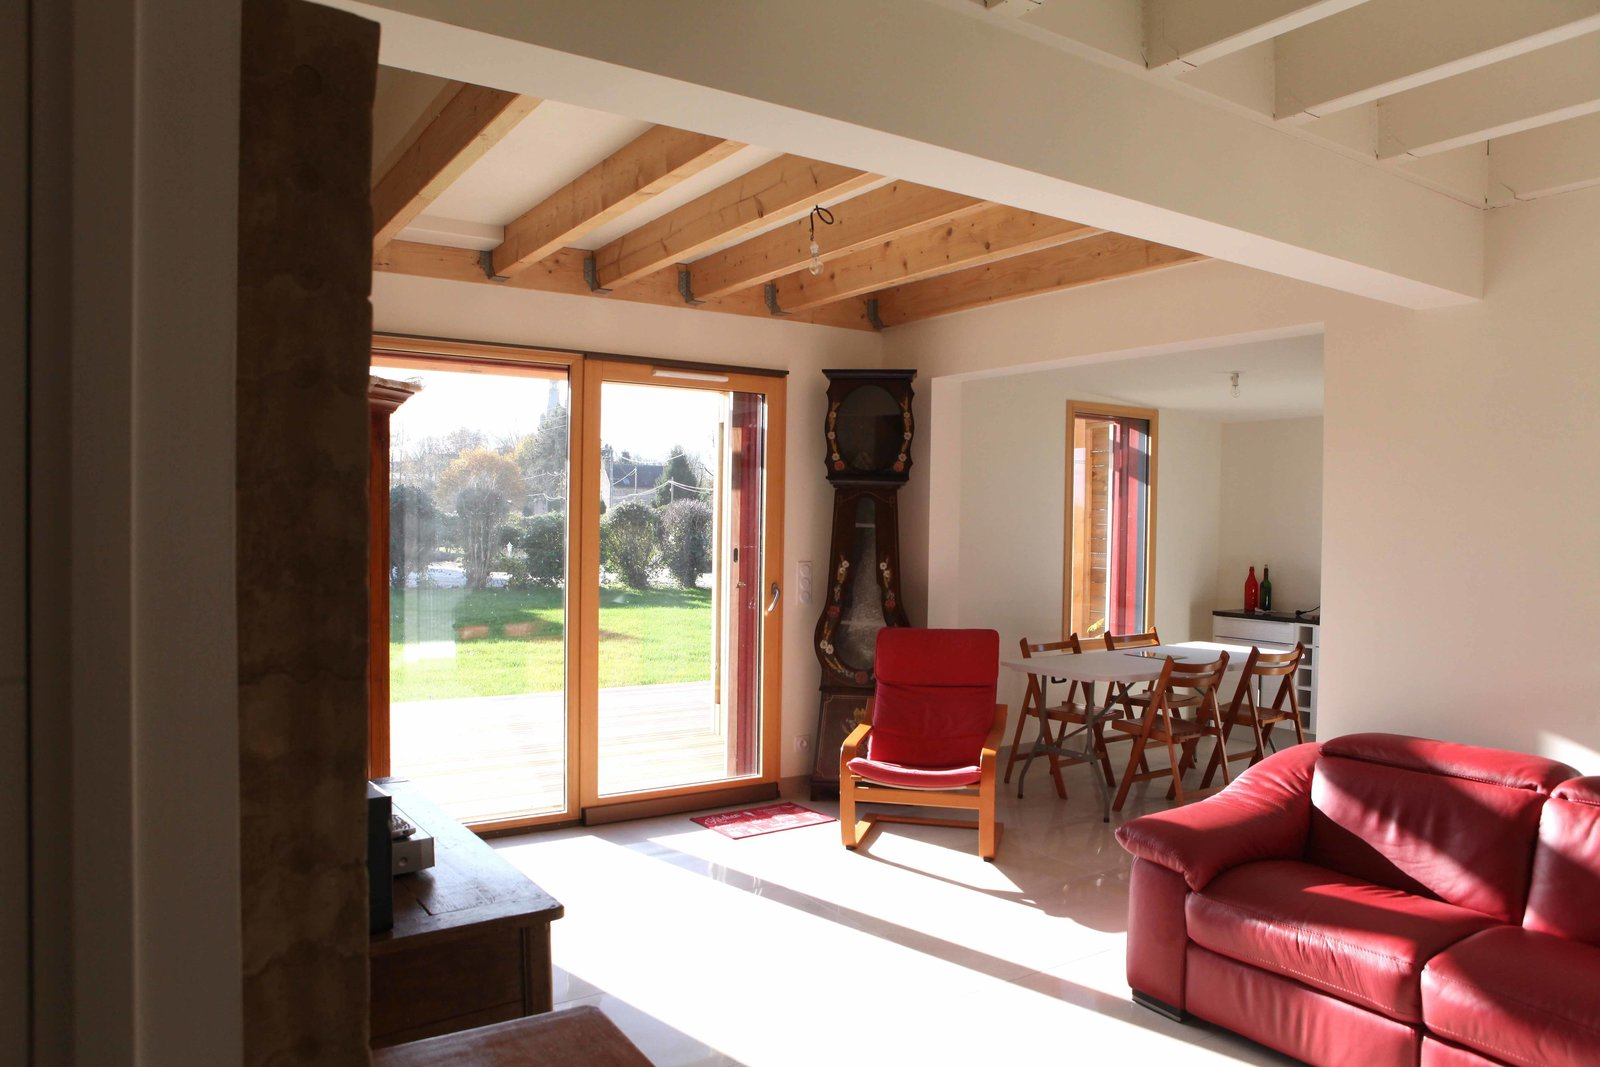 The main volume of the structure houses a ground-level living space and a bedroom as well as a lofted bedroom, bathroom, and study above. Exposed beams and natural light provide rustic charm.  Photo 3 of 7 in A Cozy, Well-Sealed Cottage in Northwest France Goes Green